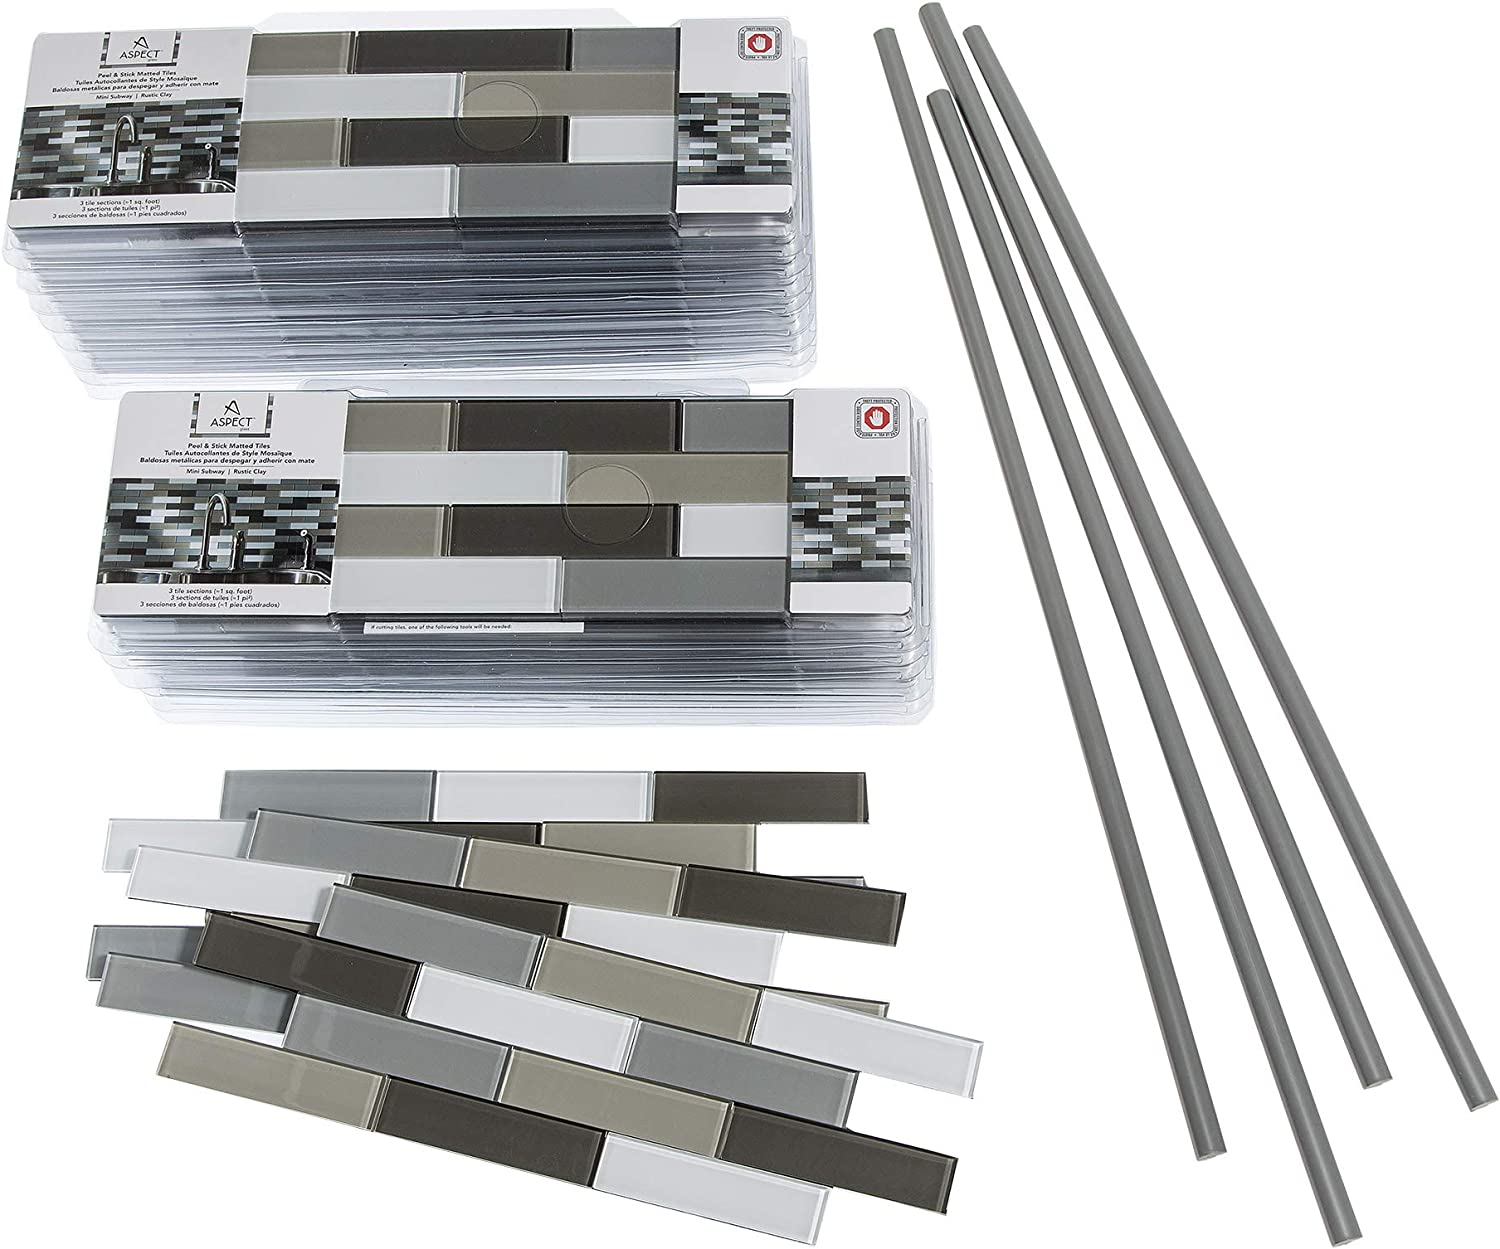 - Aspect Peel And Stick Rustic Clay Matted Glass Backsplash Kit For